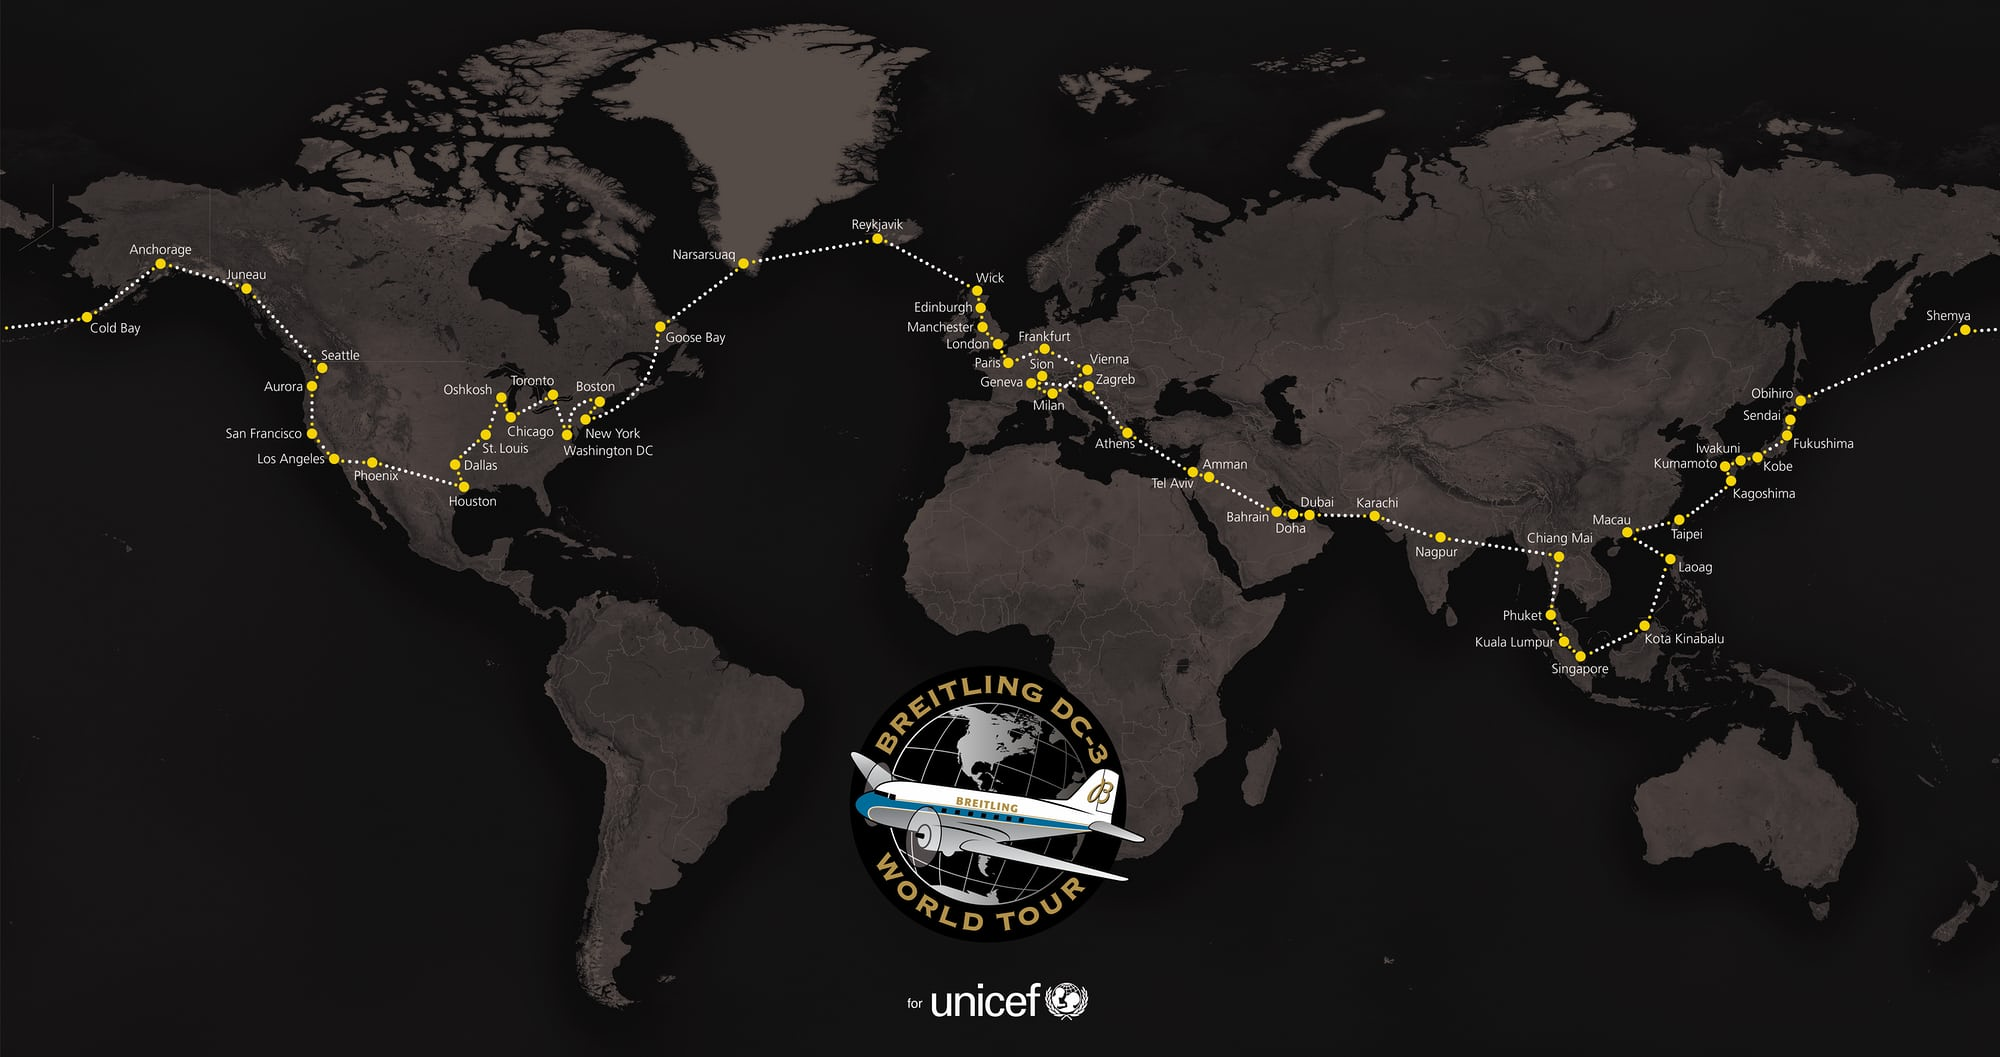 Breitling DC-3 route Dispatches: Breitling's DC-3 To Become Oldest Aircraft Ever To Circle The Earth Dispatches: Breitling's DC-3 To Become Oldest Aircraft Ever To Circle The Earth Breitling DC 3 Around the World Map